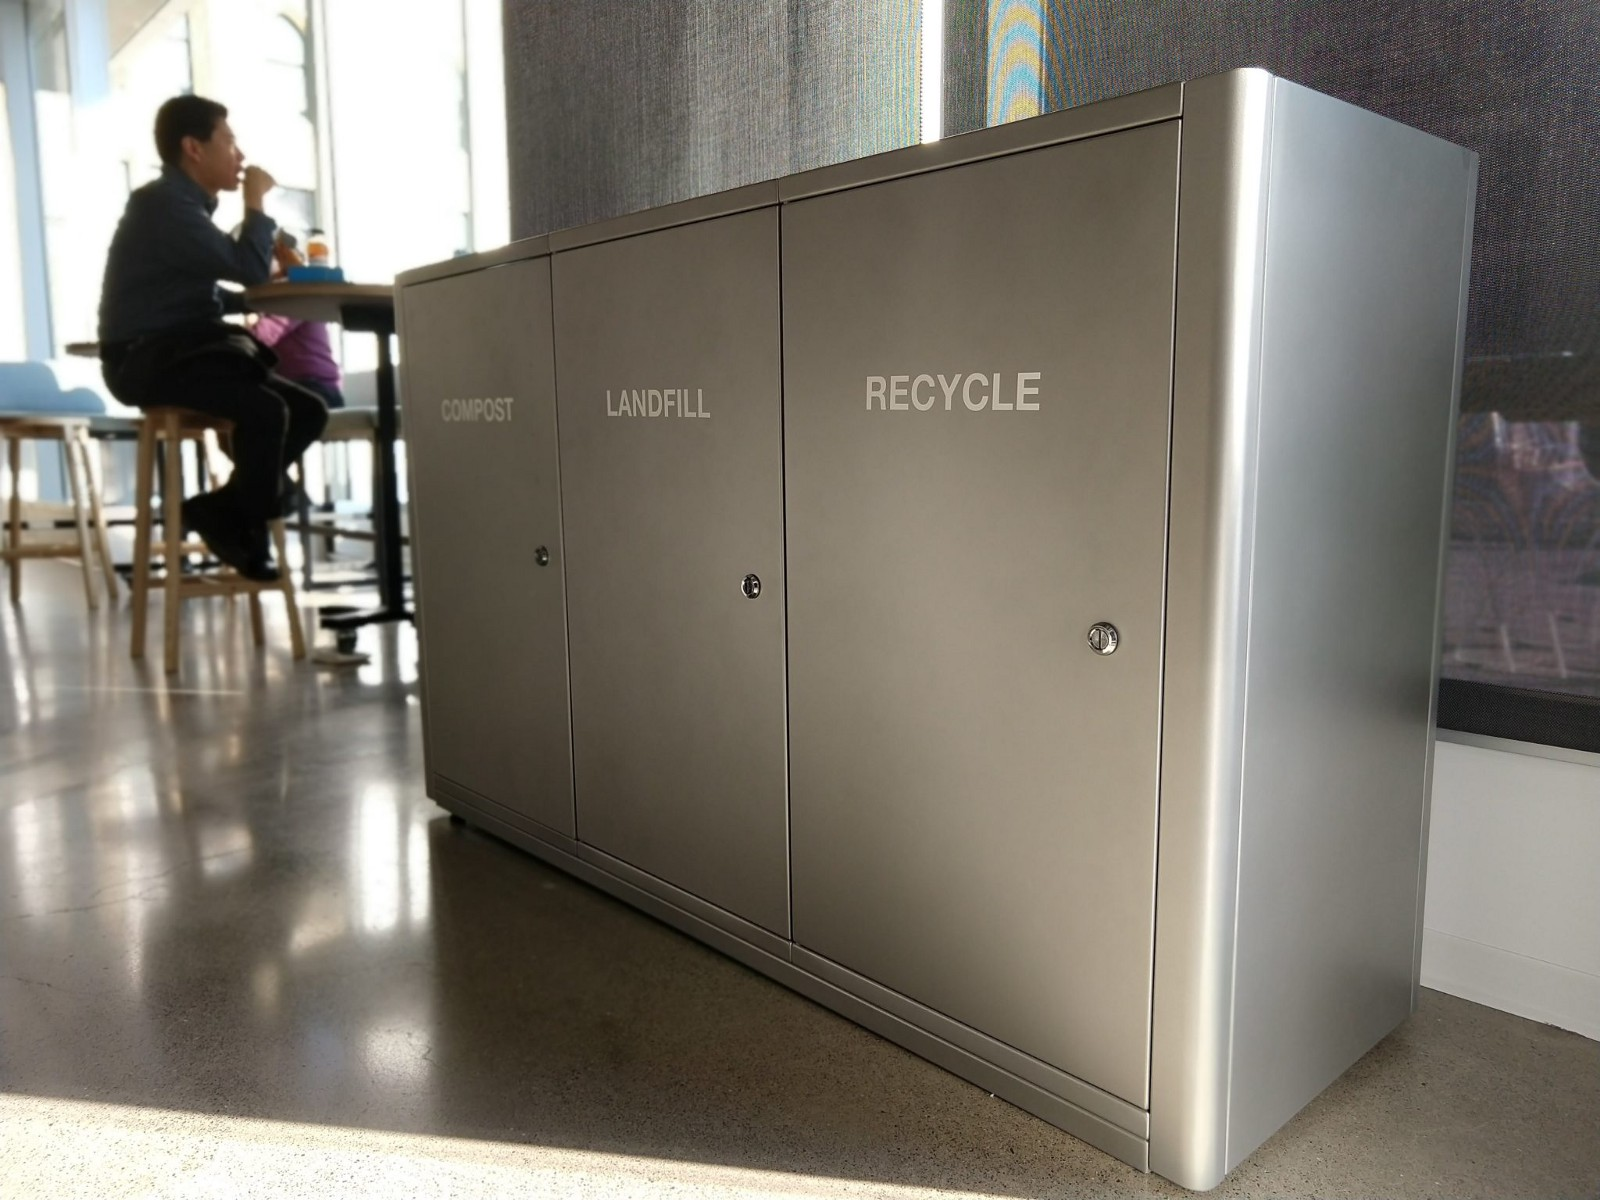 Sustainable workplaces make recycling and composting easy